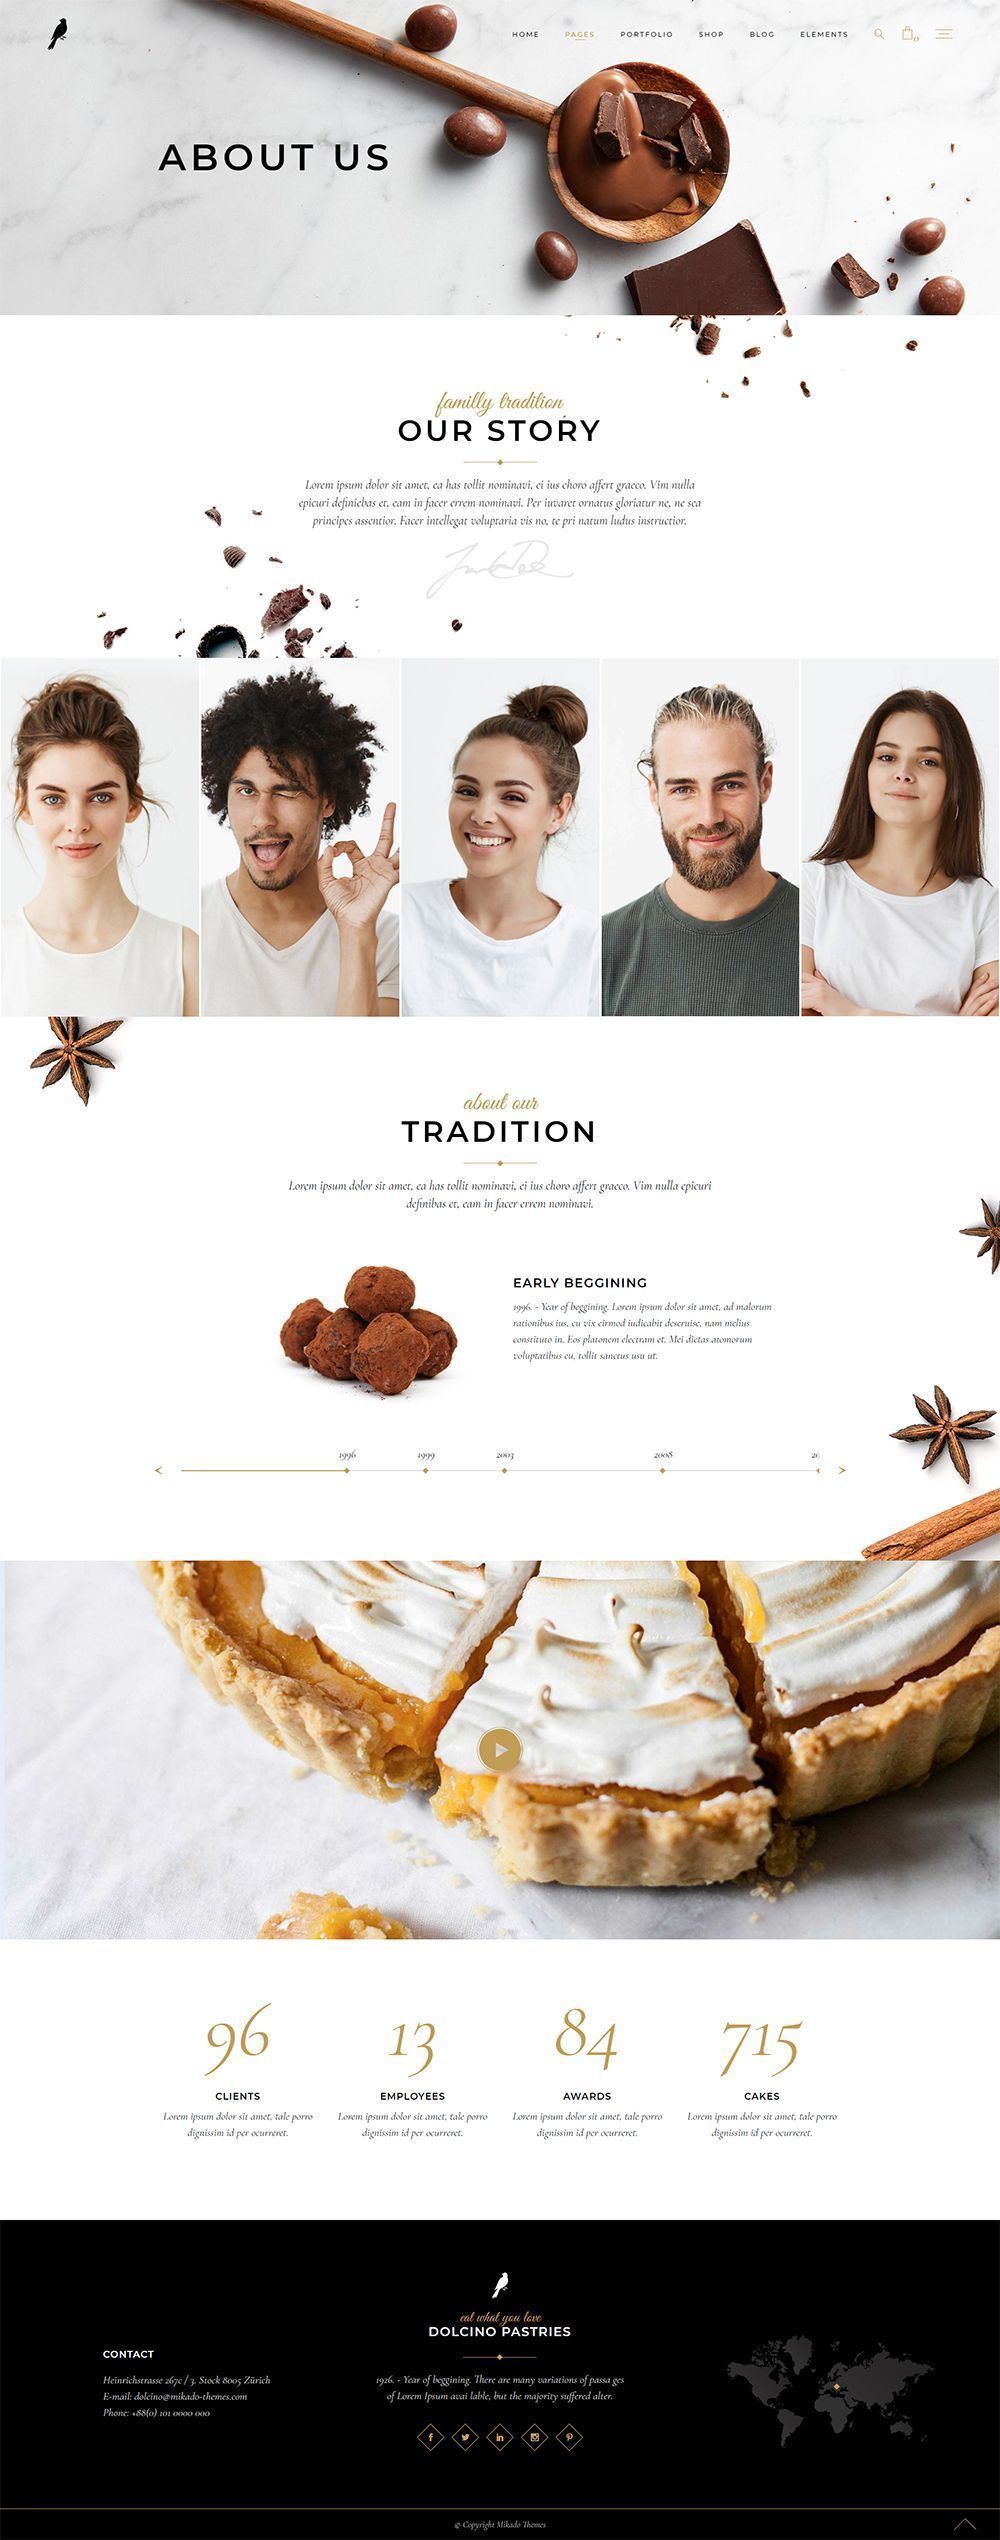 Introduce your bakery or pastry shop in the sweetest way, as you can see from Dolcino WordPress theme templates! #wordpress #theme #design #webdesign #uxdesign #uidesign #responsive #designinspiration #webdesign #wordpresslove #template #layout #websitedesign #branding #websiteideas #webart #webpage #visual